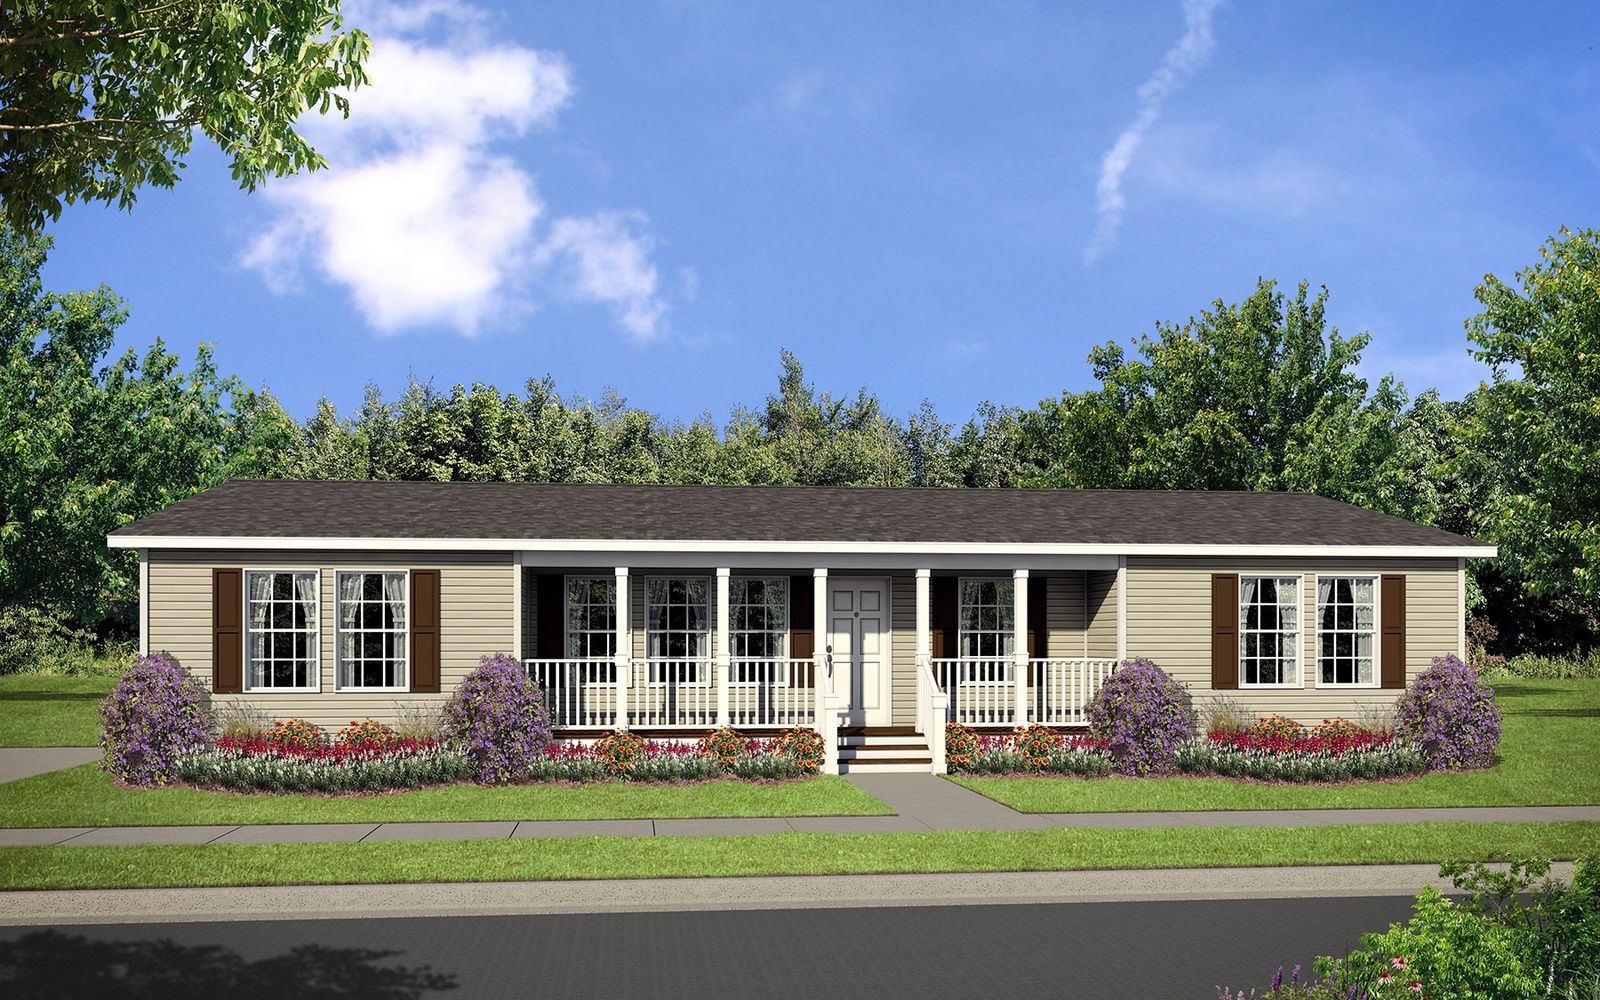 exquisite modular home definition. House Dutch 3256 Elevation with Recessed Front Porch  Modular homes